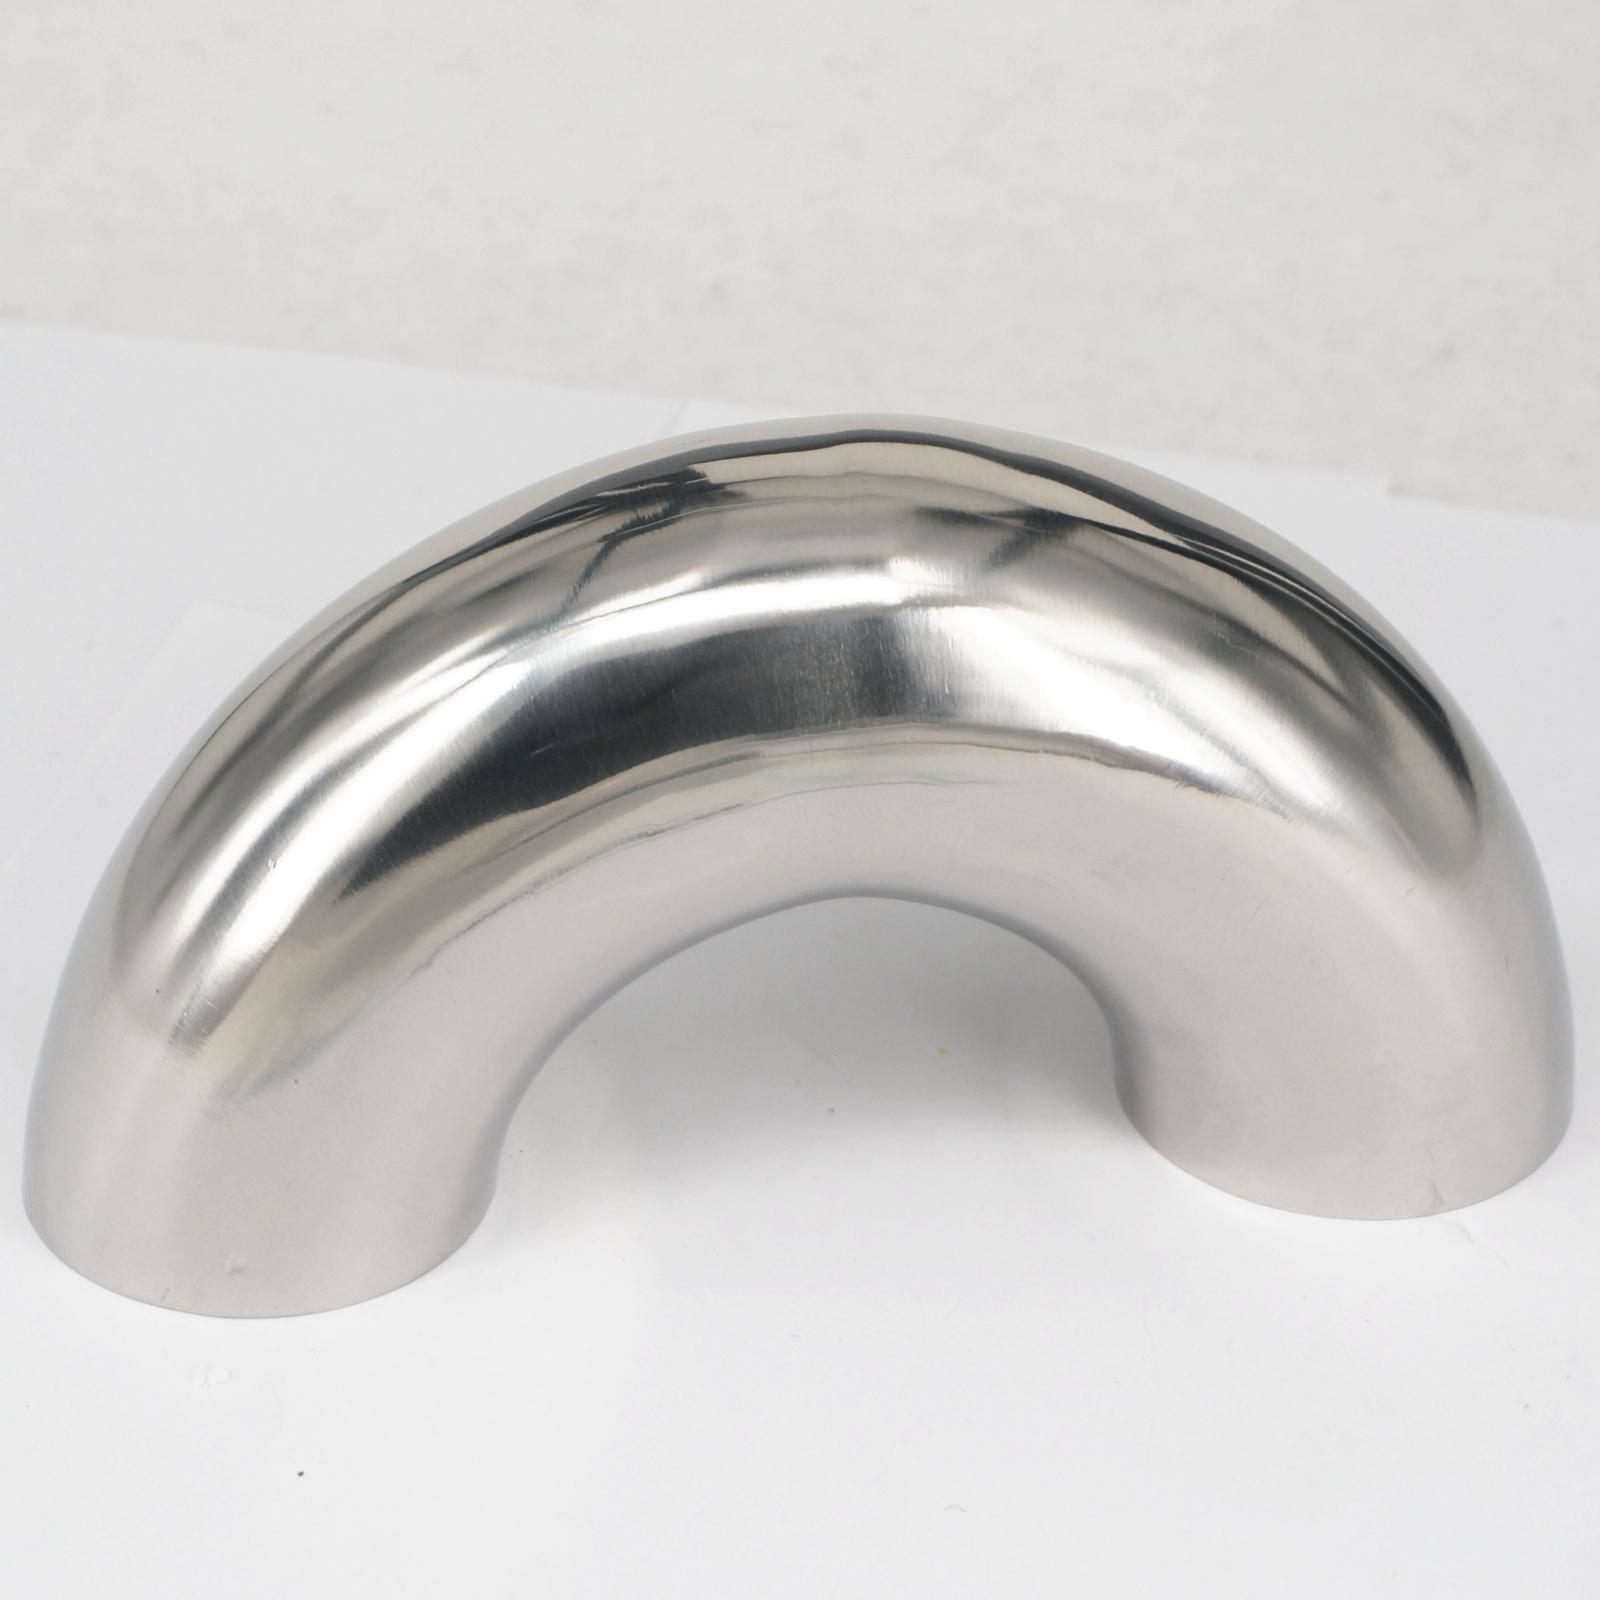 51mm 2 O/D 304 Stainless Steel Sanitary Weld 180 Degree Bend Elbow Pipe Fitting For homebrew Dairy Product new 57mm tee 3 way stainless steel 304 butt weld pipe fitting ss304